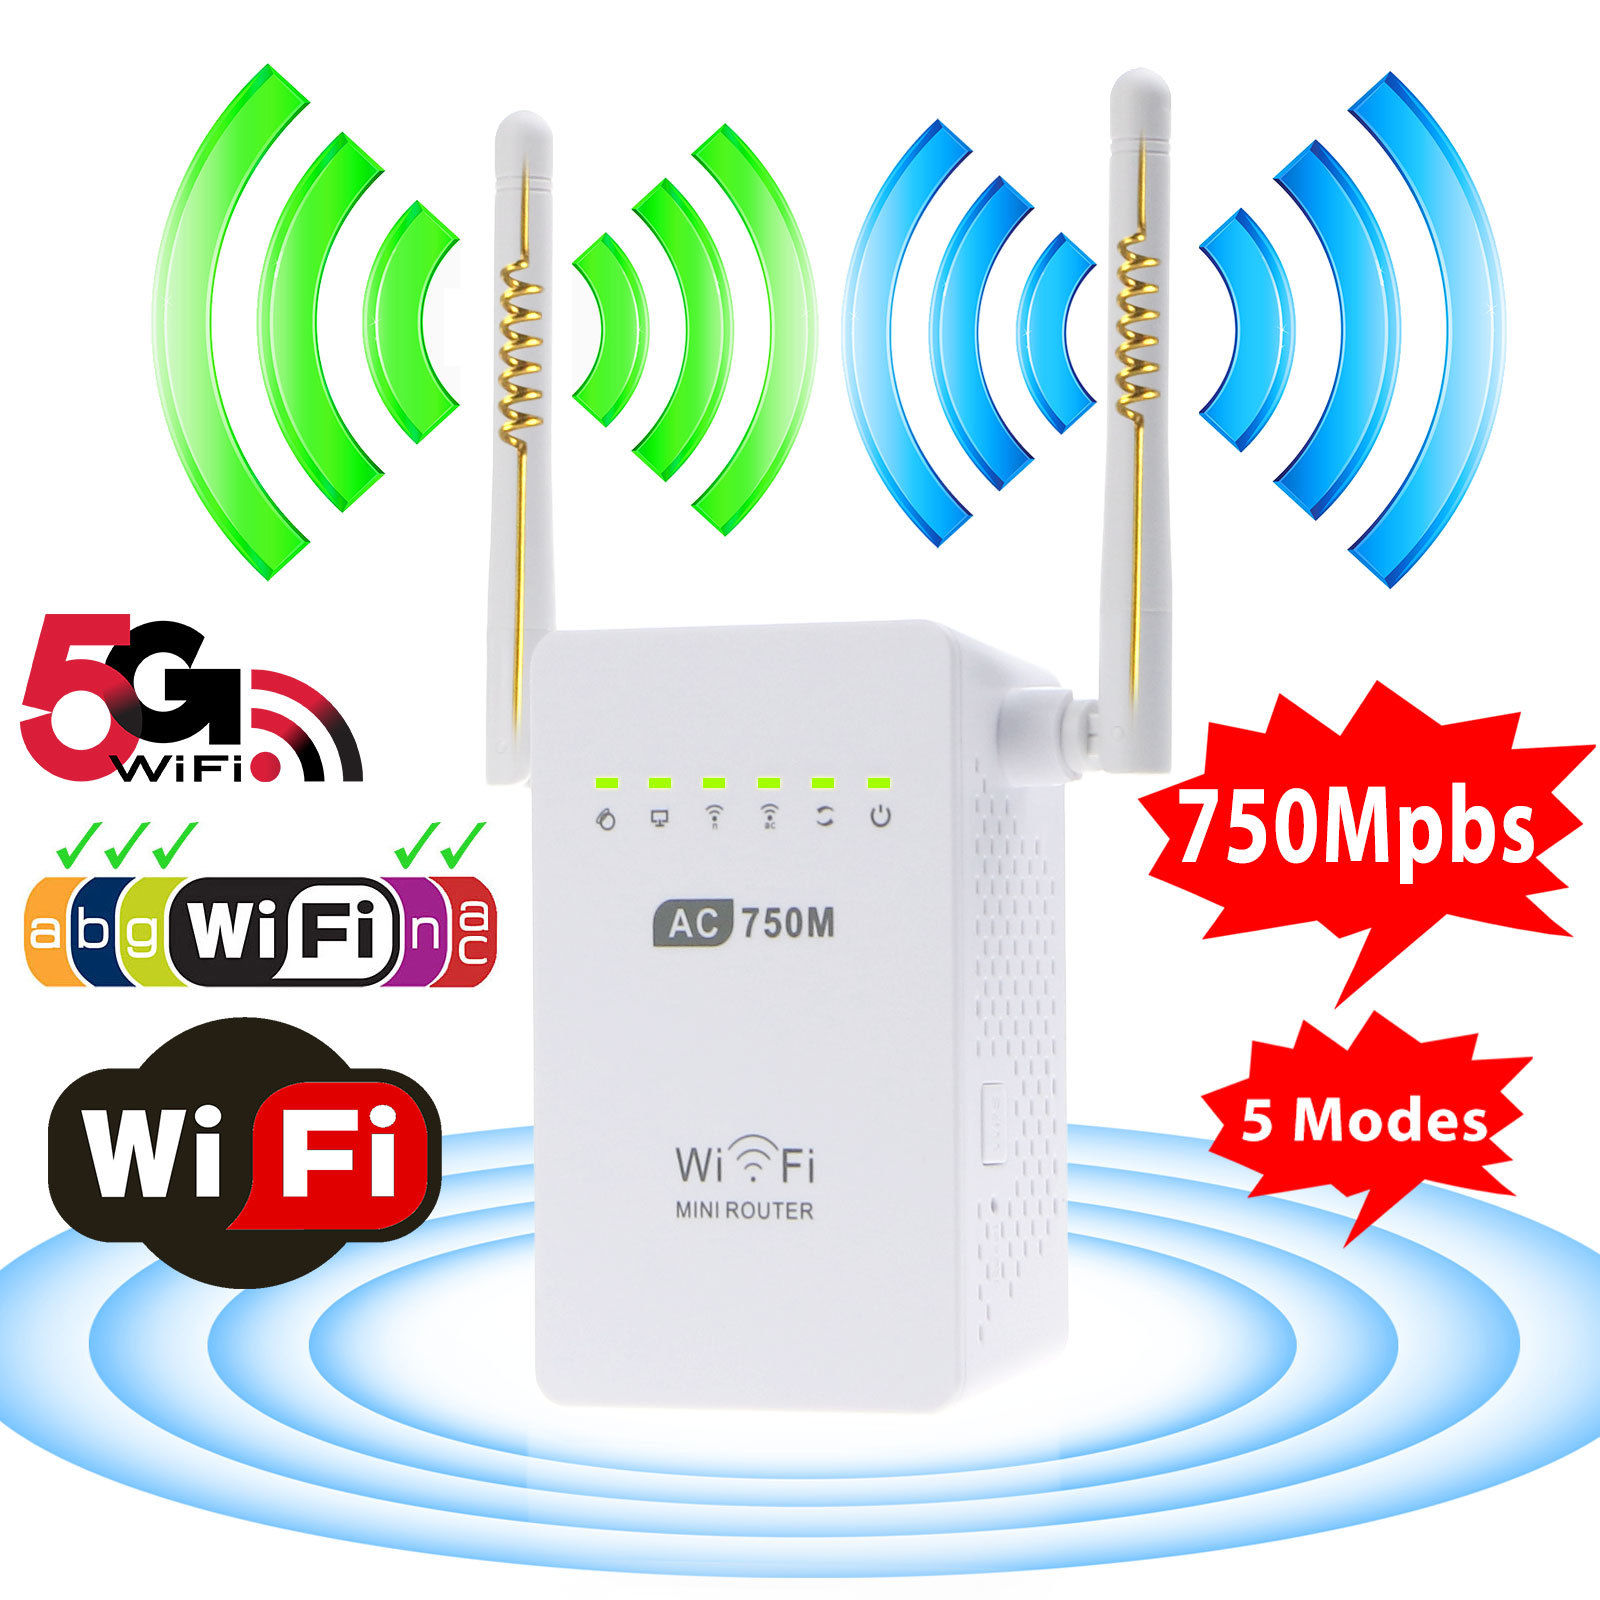 TSV 750Mbps Wireless Dual Band WiFi Extender with Dual 5dBi External Antennas Wi-Fi Signal Booster with 2.4GHz + 5GHz, Wall Plug, Ethernet Port, WiFi Repeater